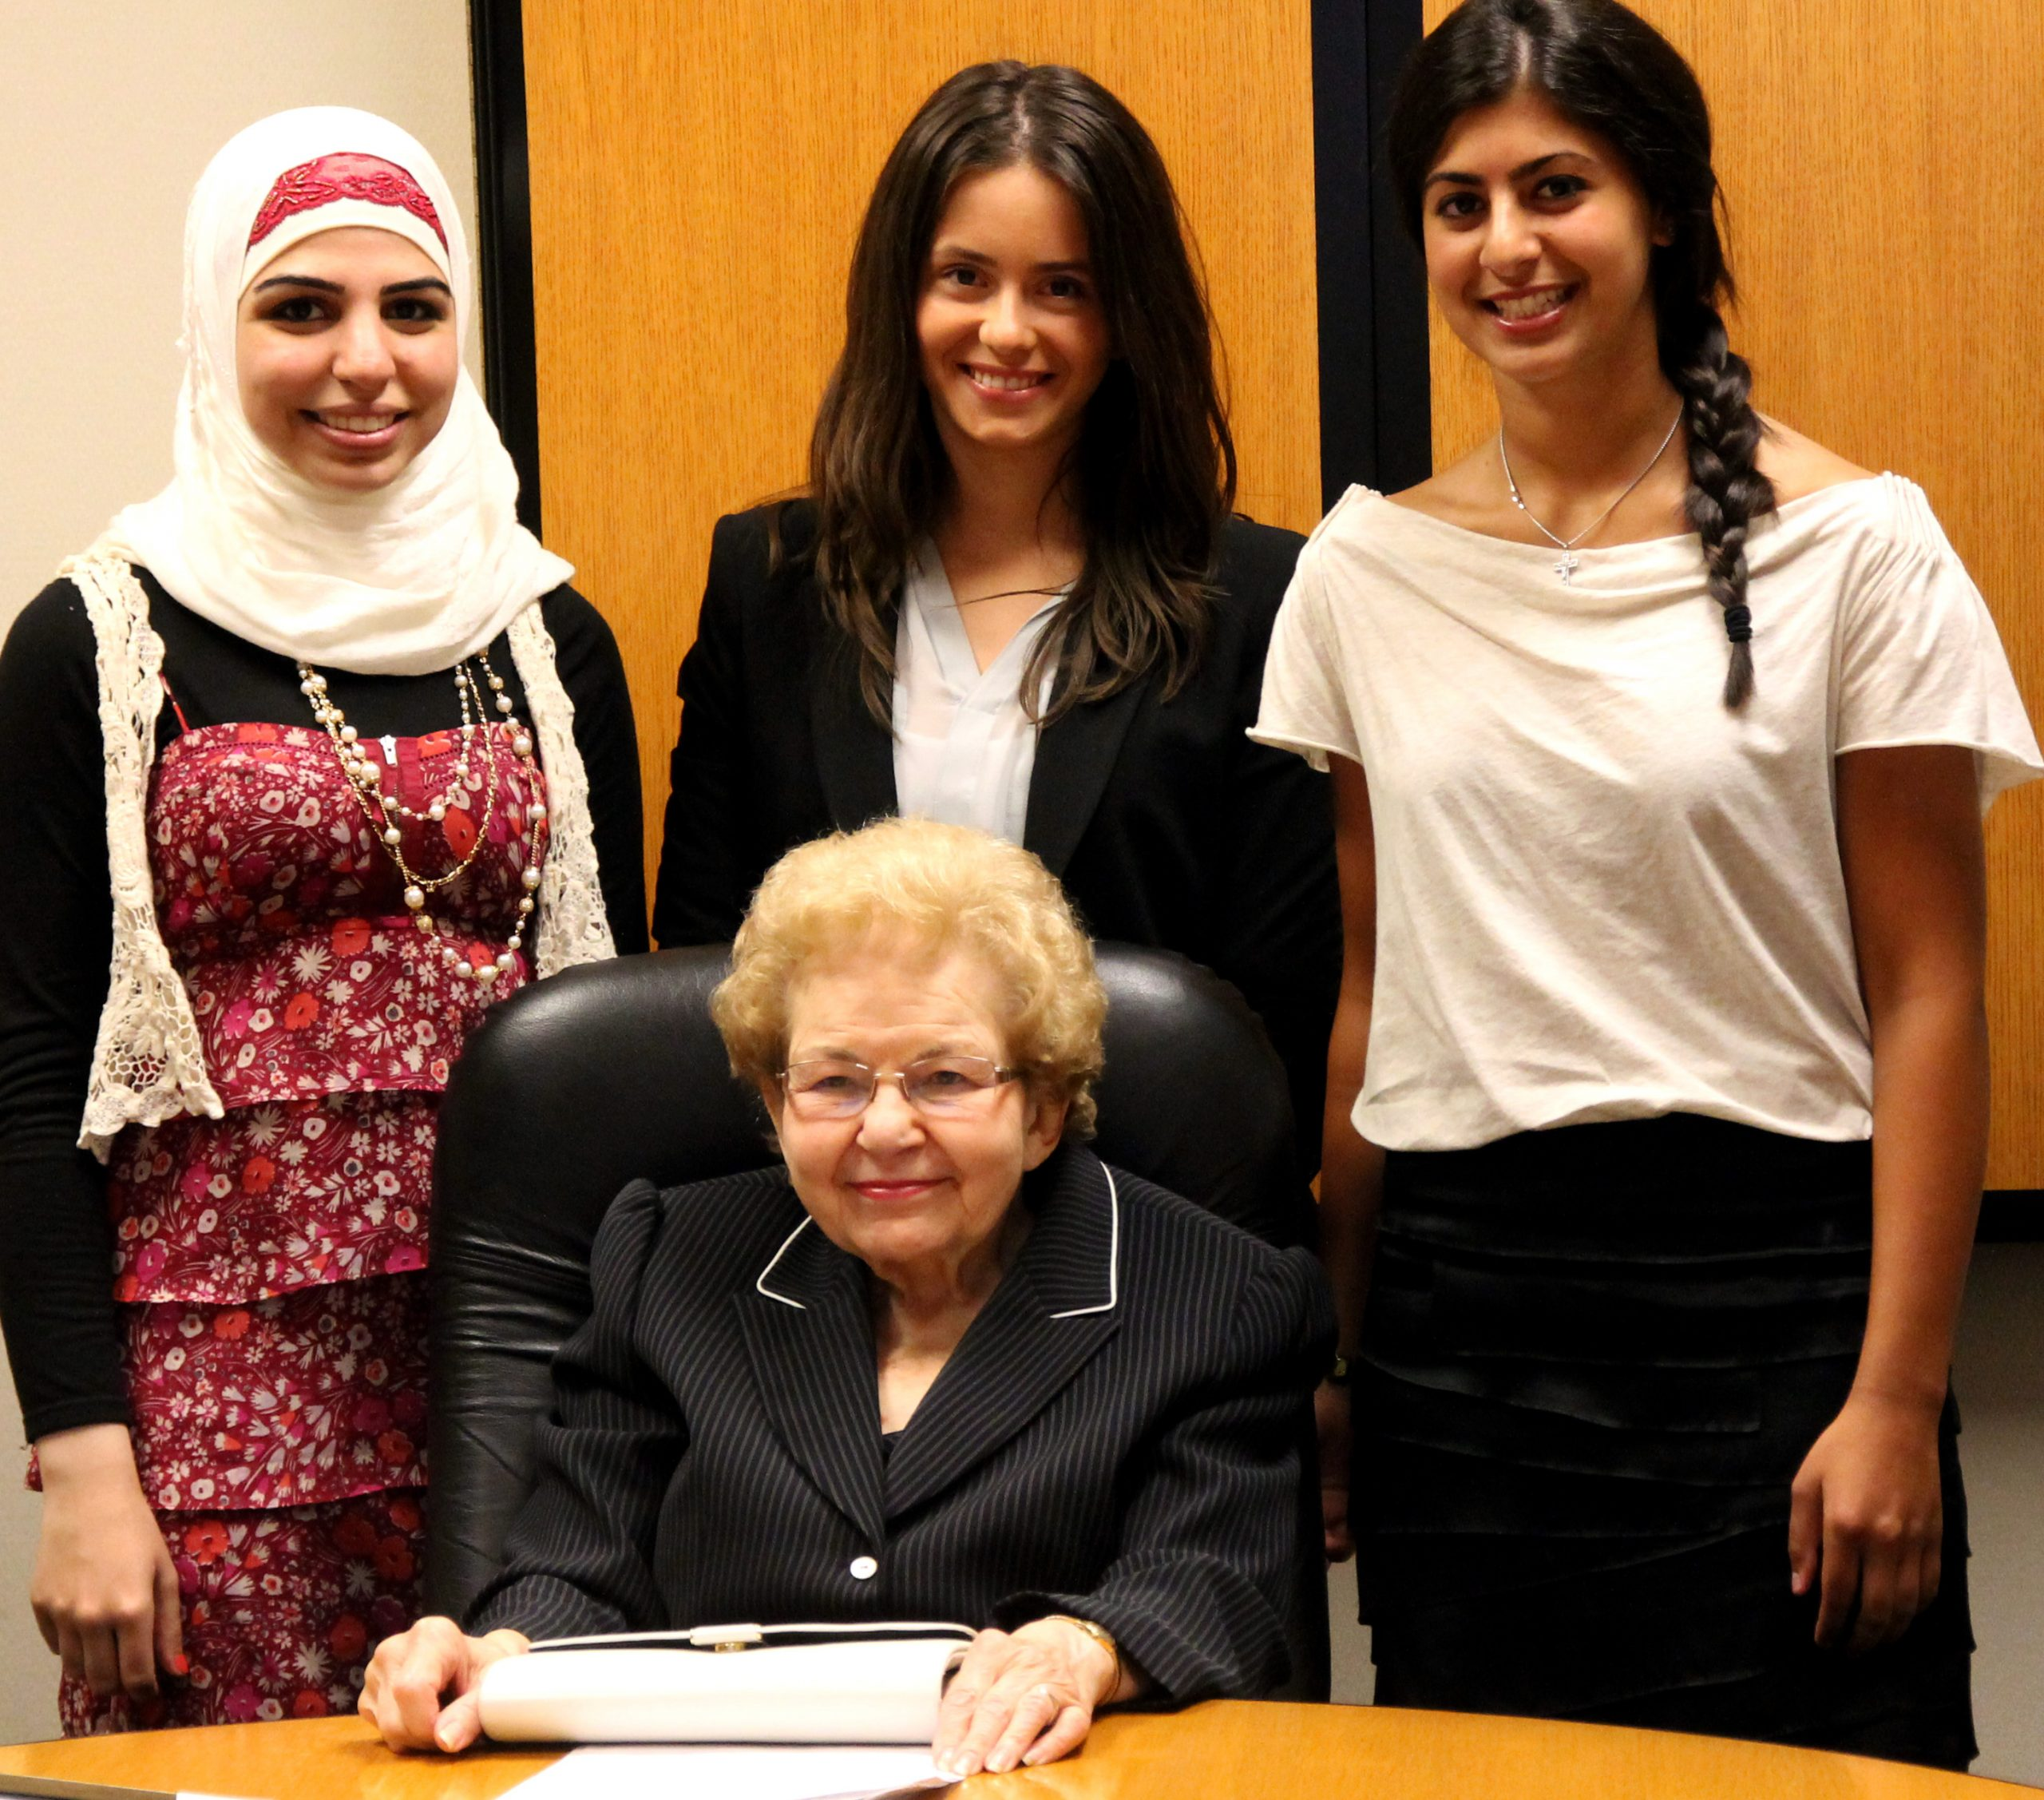 Aauw Welcome To The Dearborn Branch Of Aauw!   Dearborn Intended For U Of M Dearborn Academic Calander